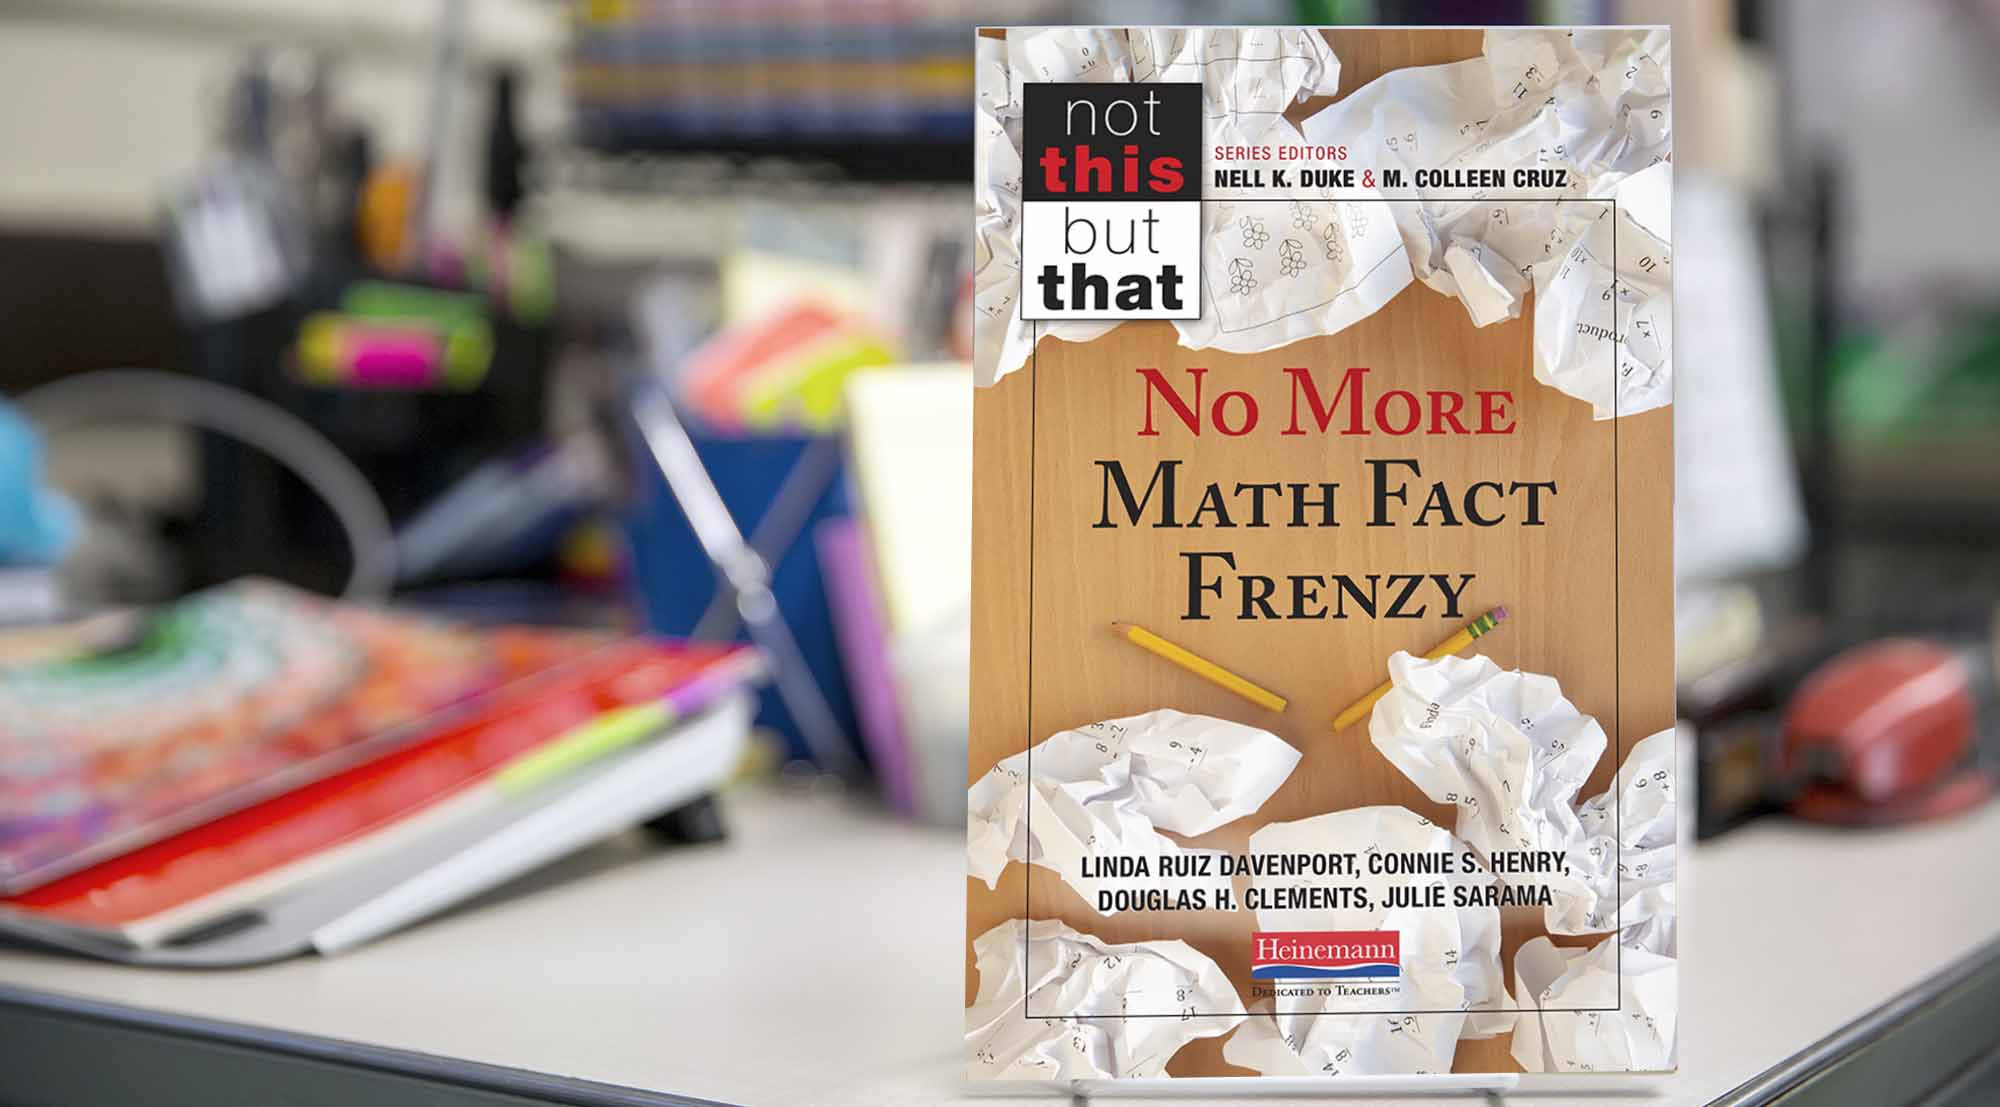 Math Fact Frenzy Drills Do Not Lead To Fluency